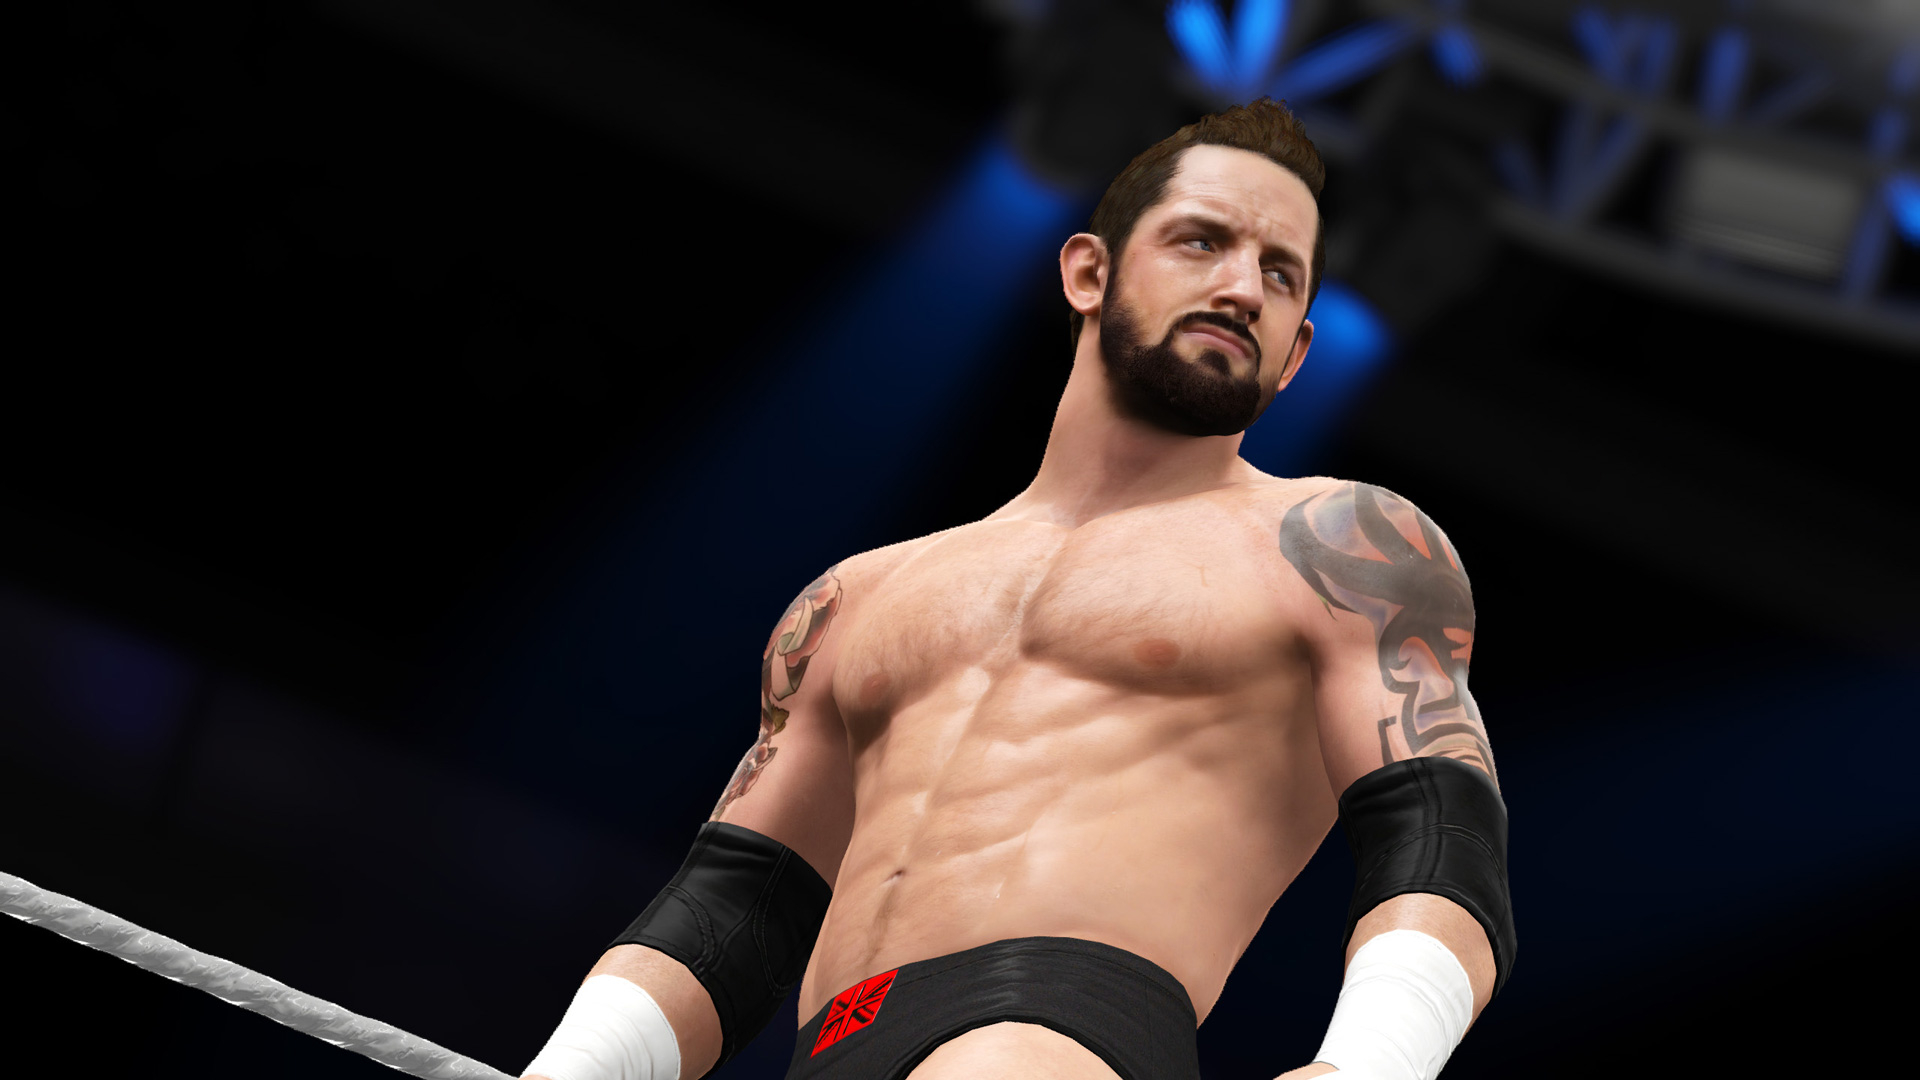 Wwe 2k16 Hd Wallpapers Free Download